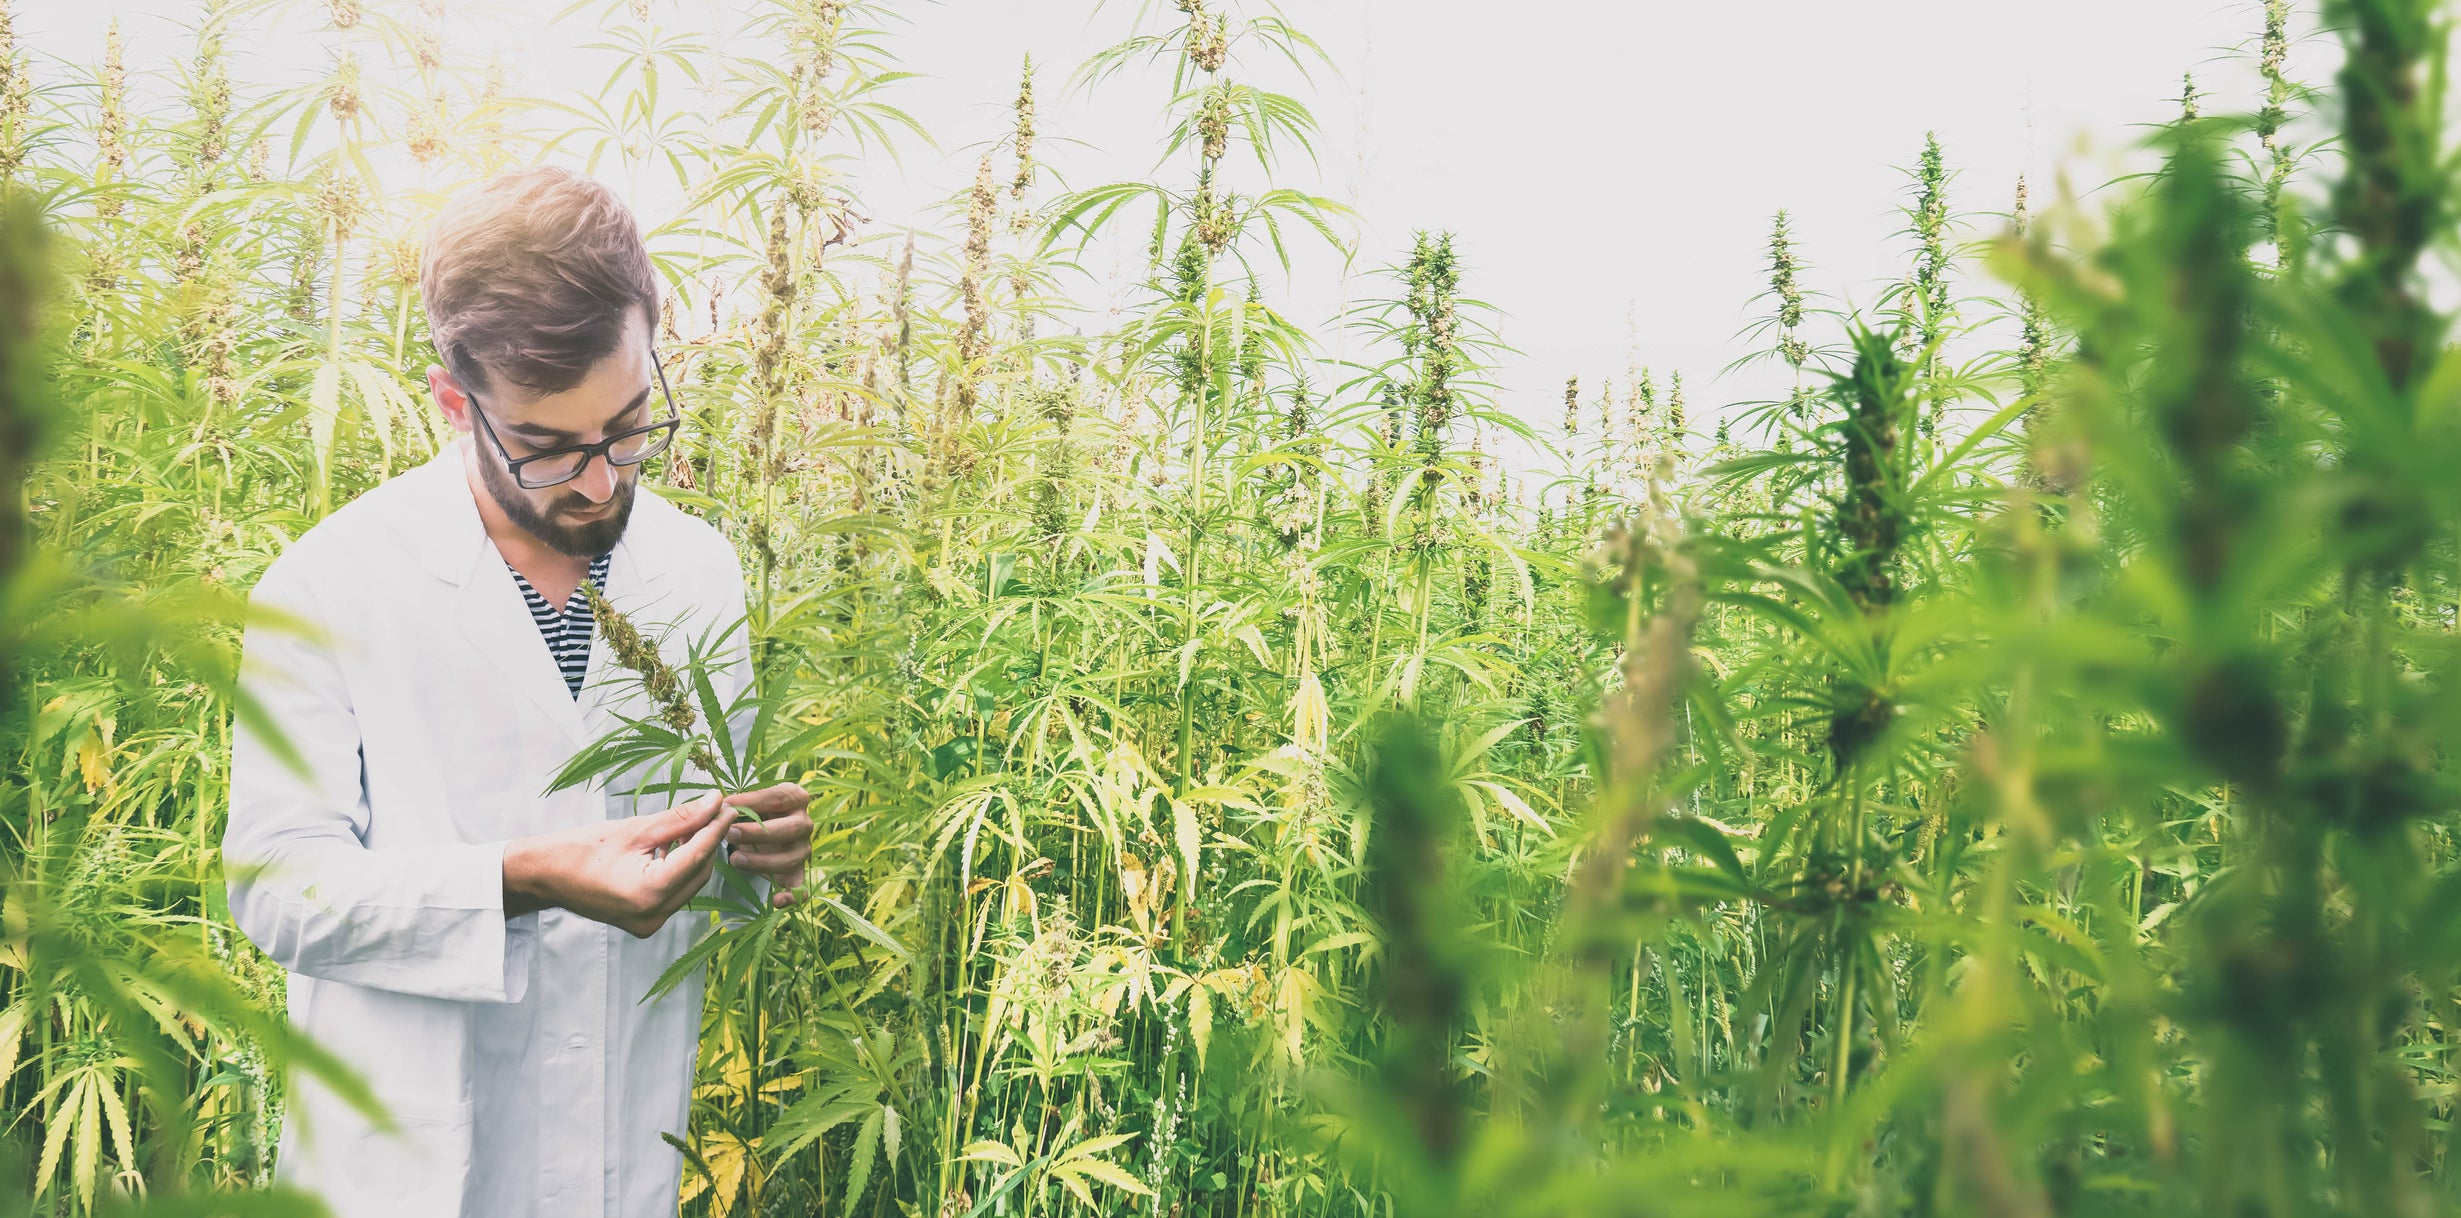 2 Top Cannabis Stocks to Buy Right Now